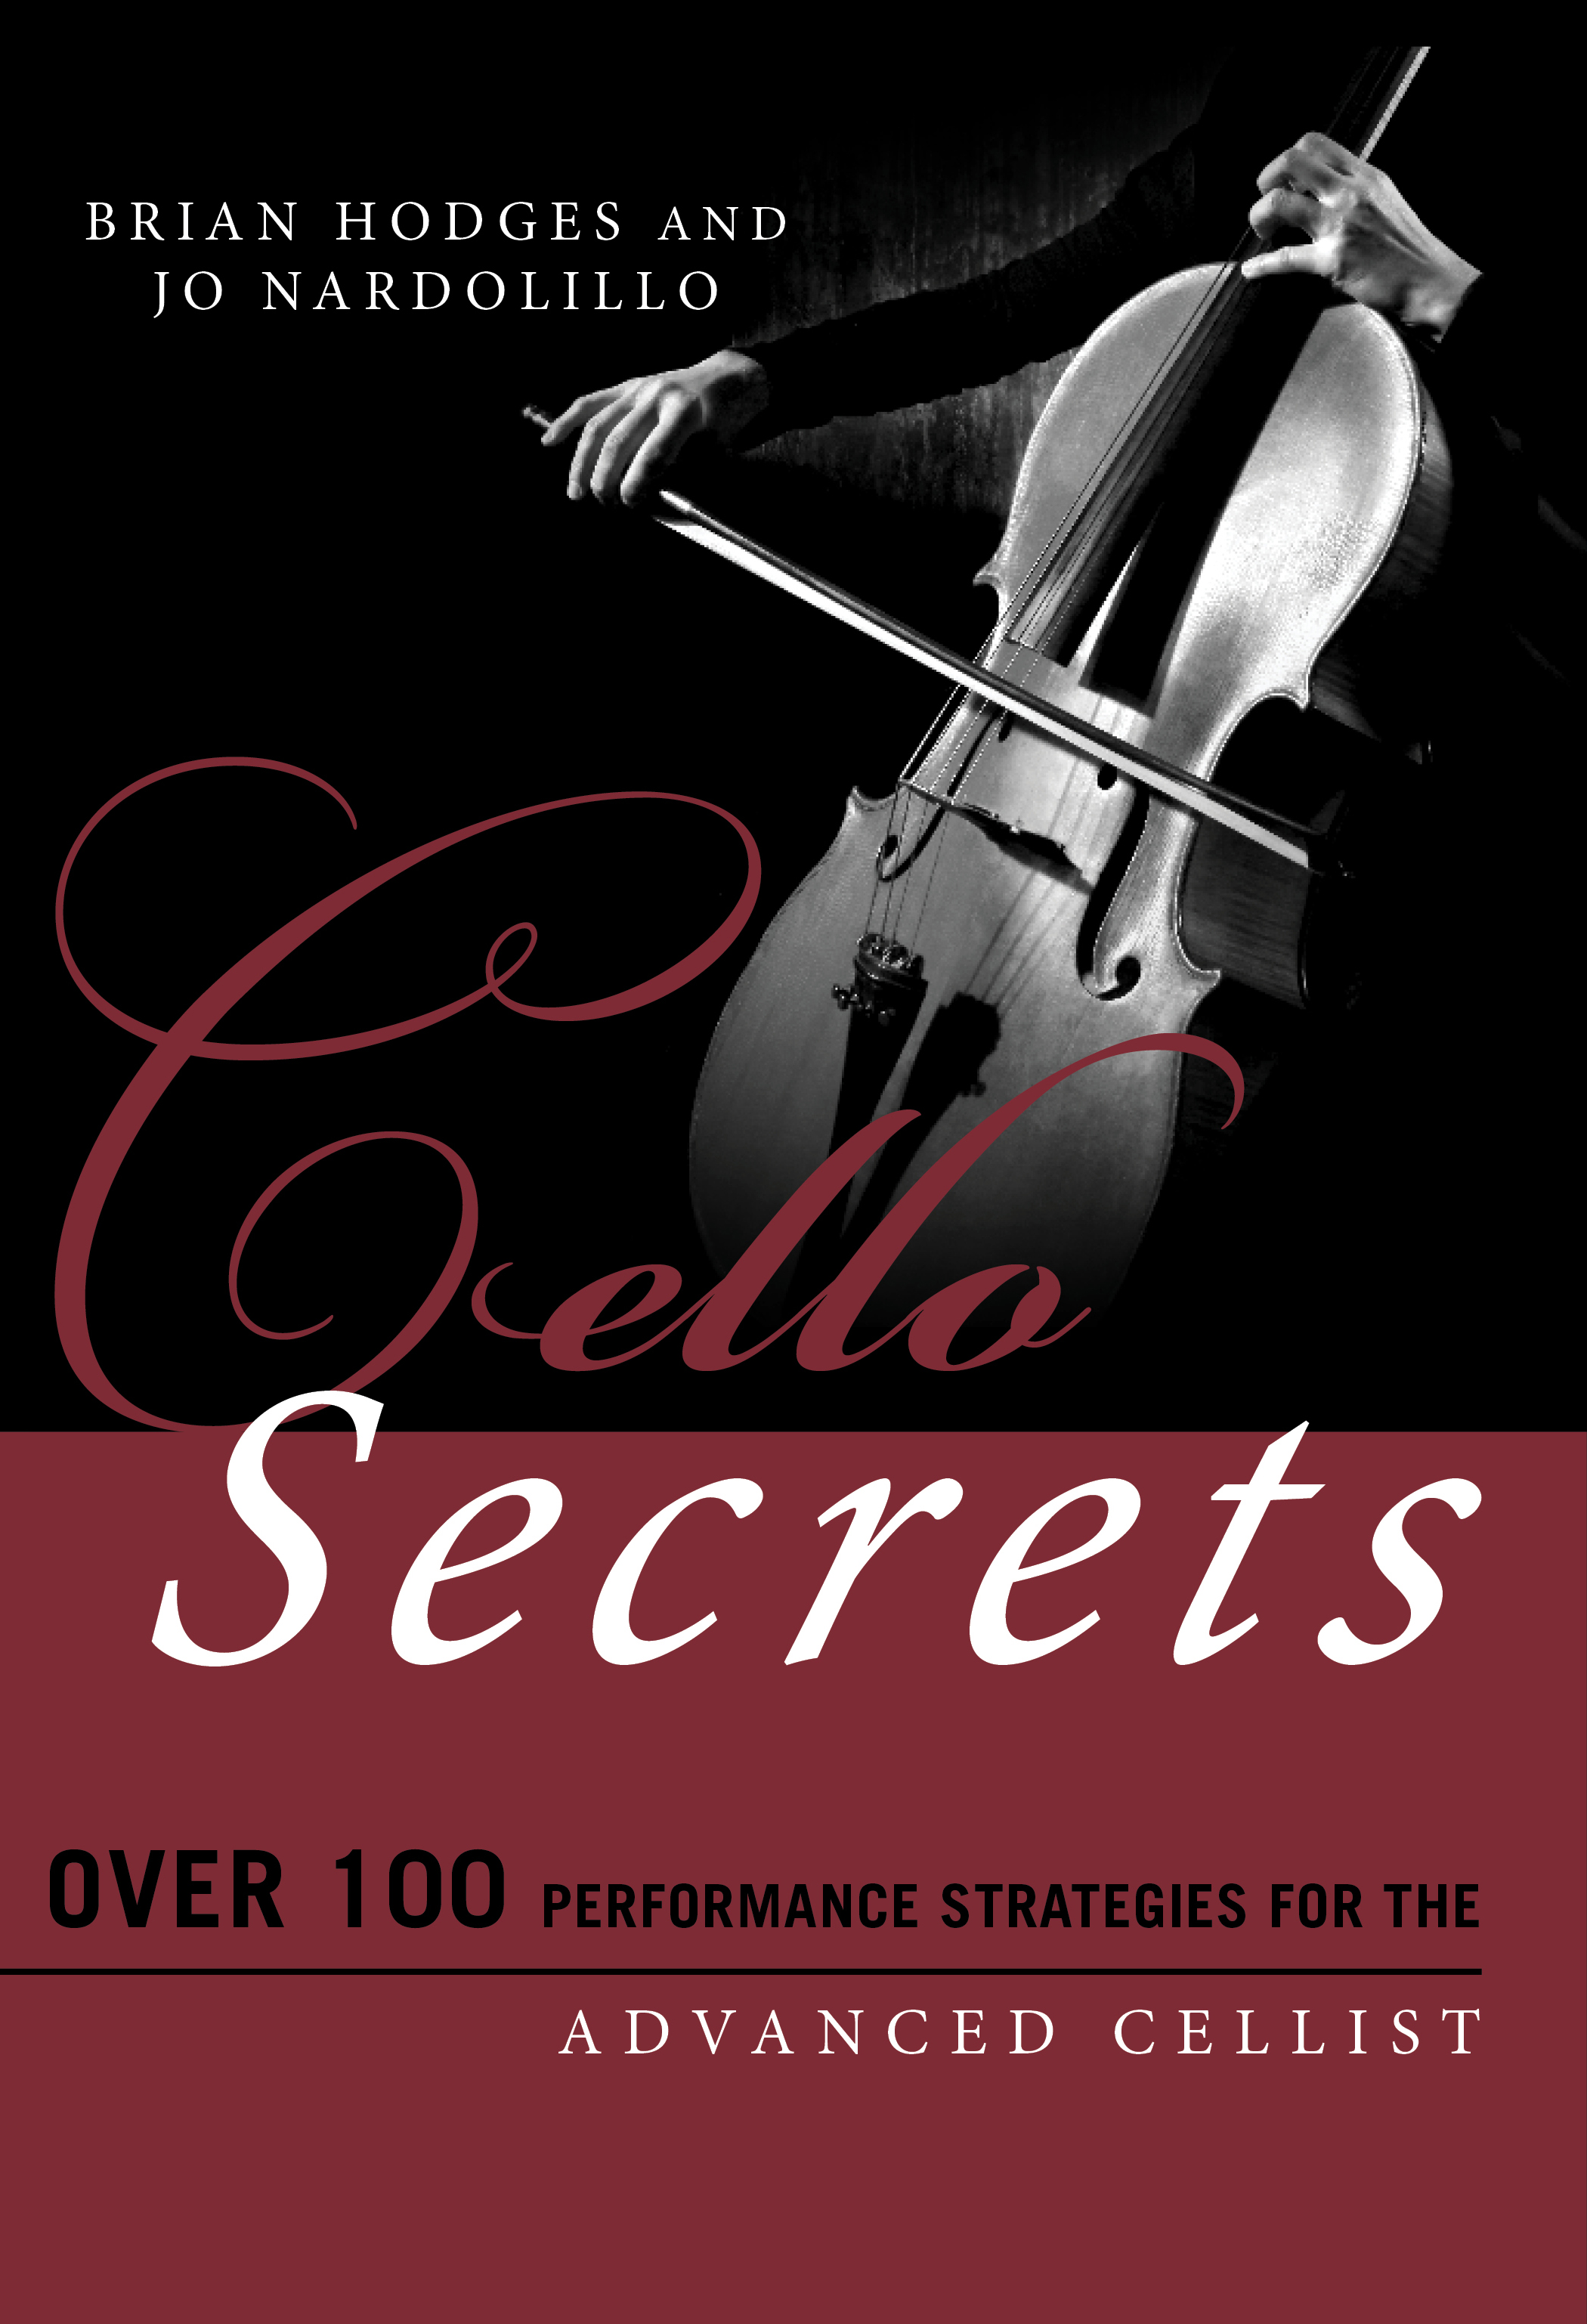 Book cover of Cello Secrets by Brian Hodges